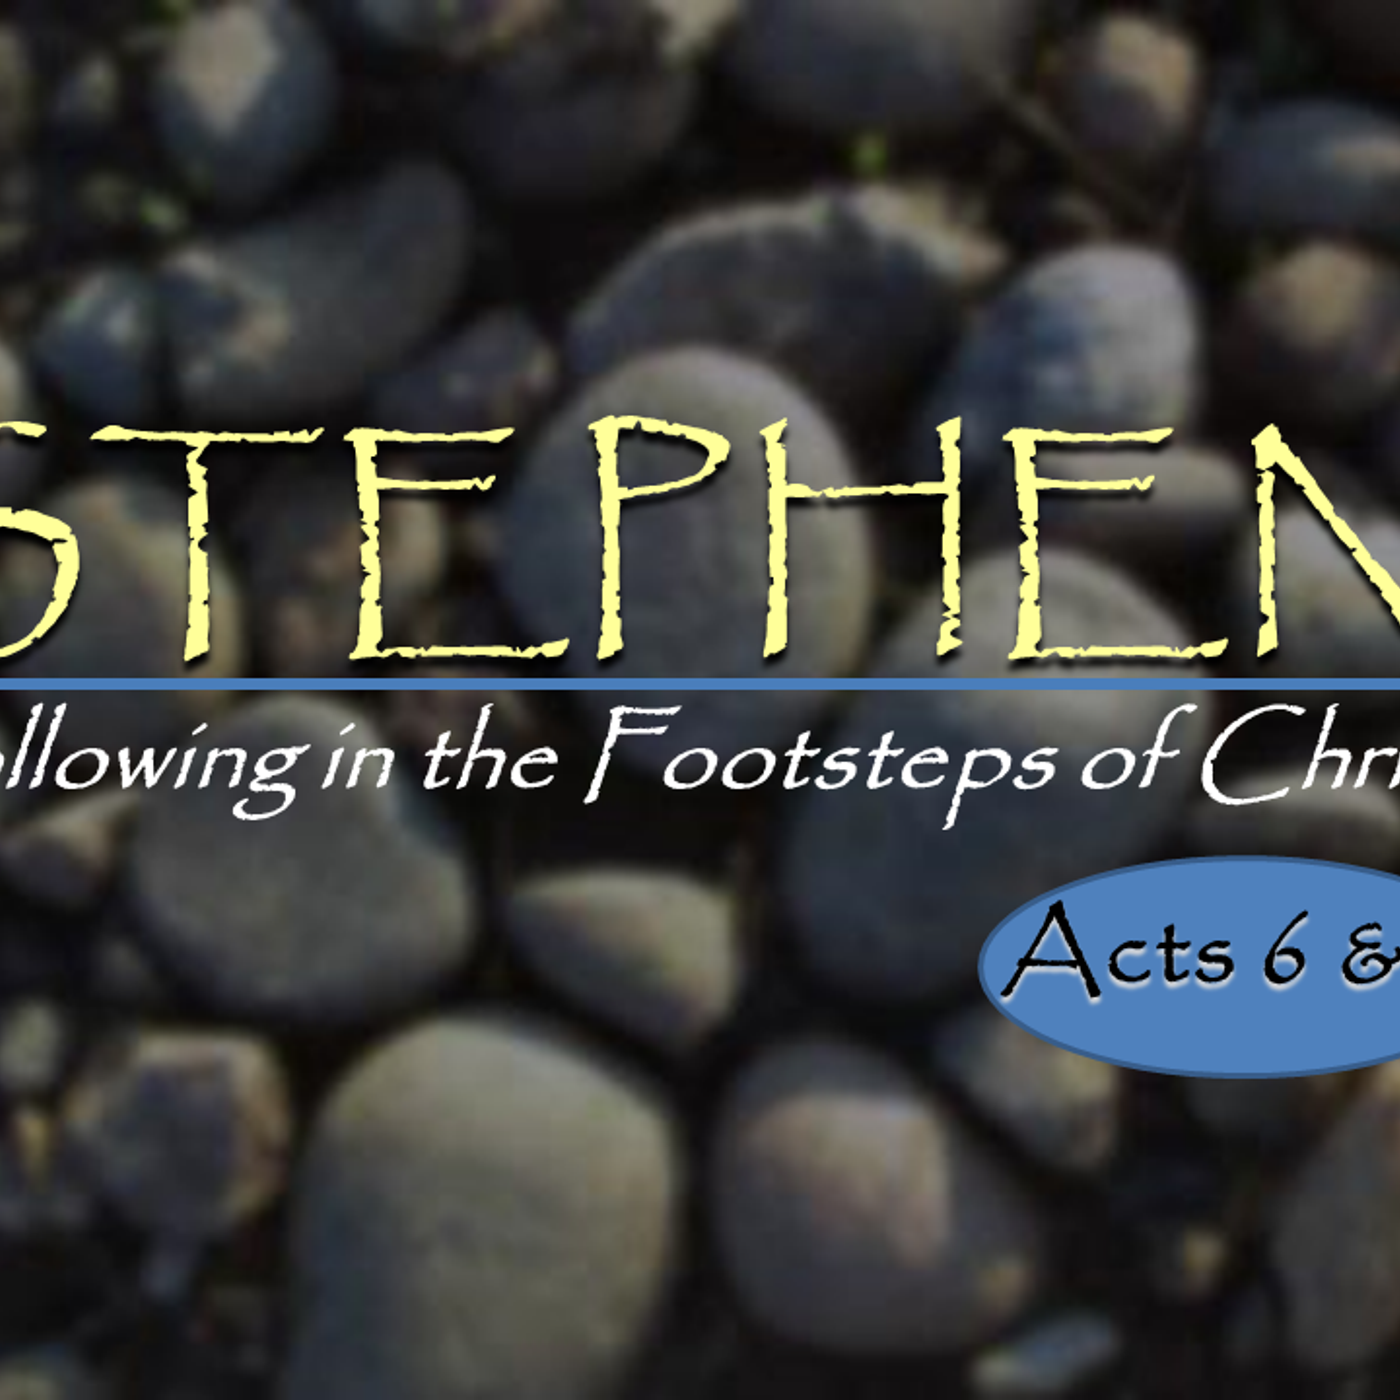 Stephen - Following In The Footsteps of Christ